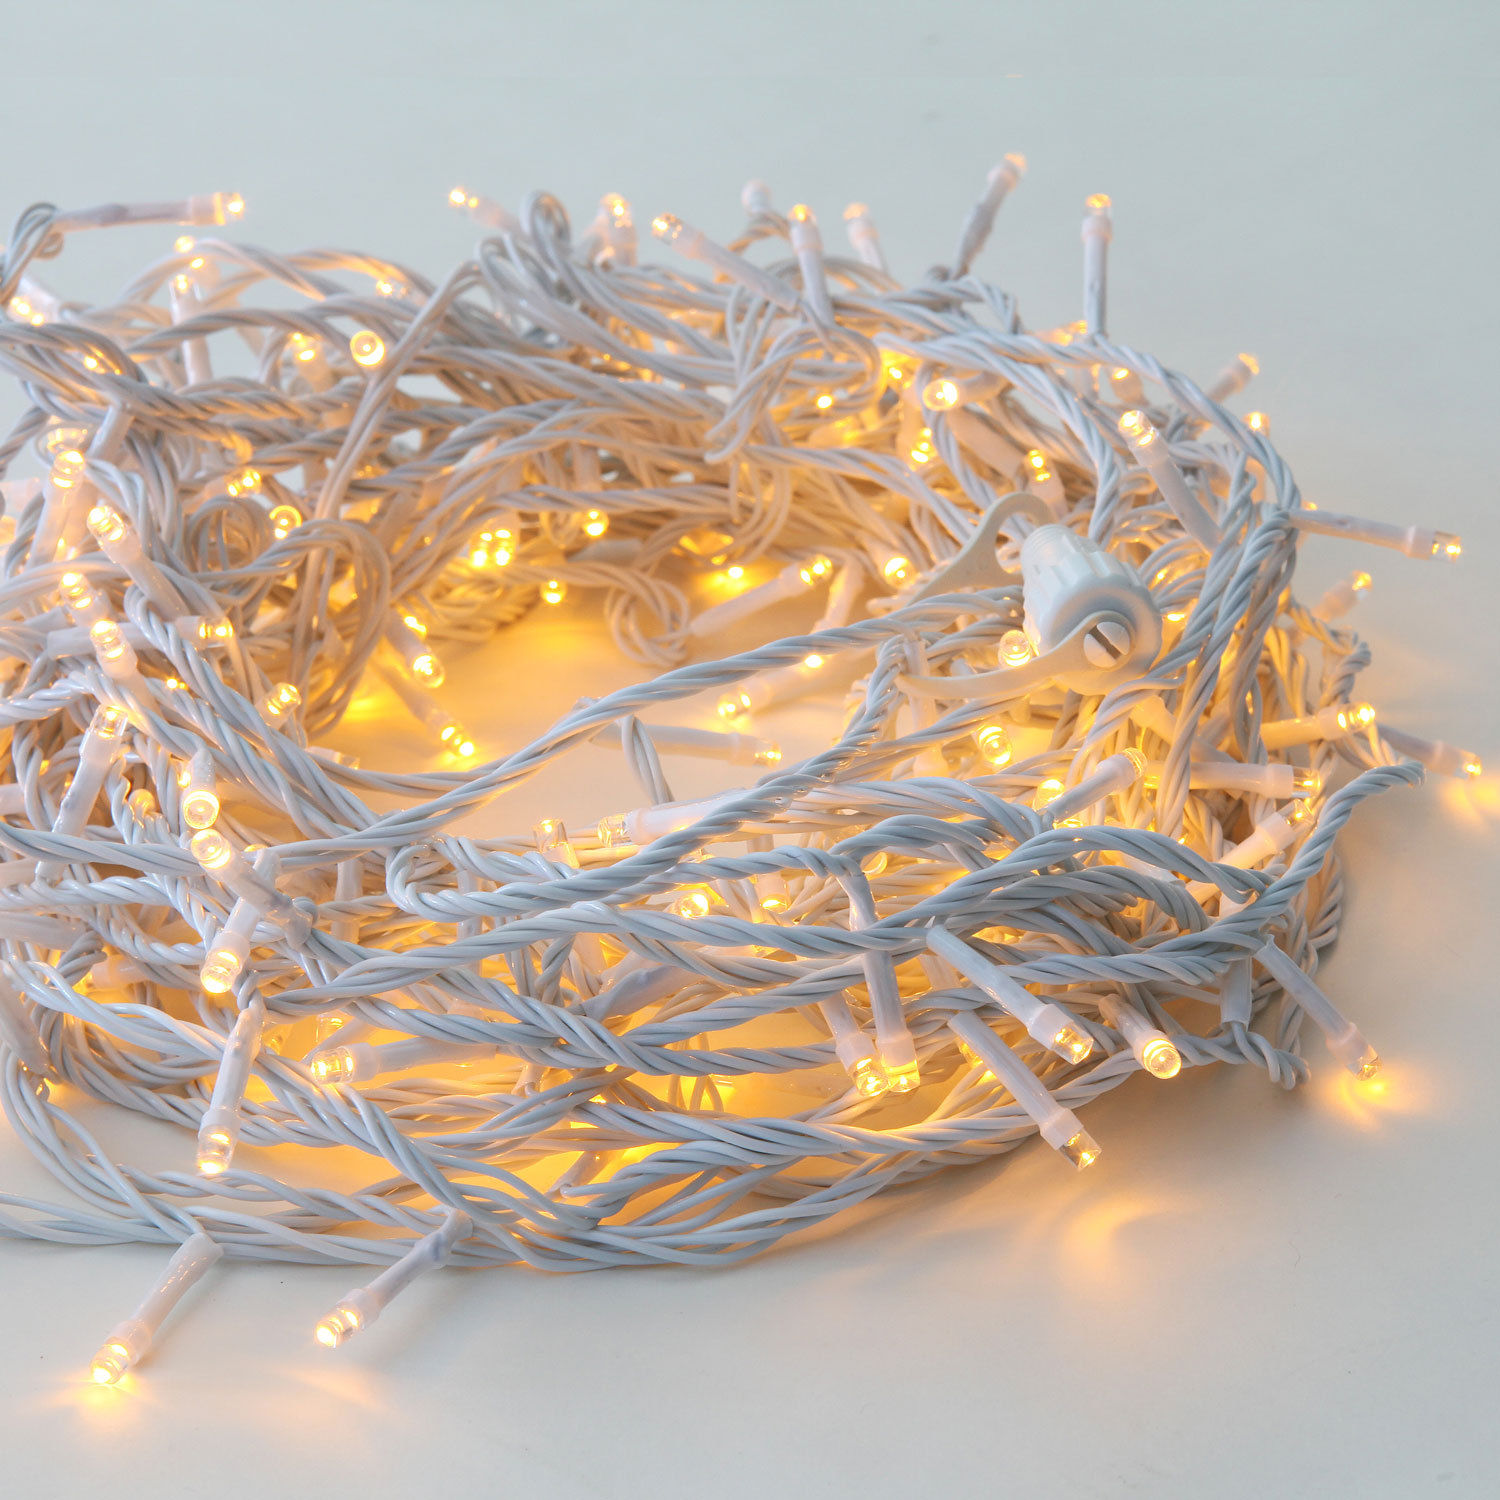 65.5 ft Outdoor Warm White 200 LED Decorative White Cable Battery String Lights by LampLust